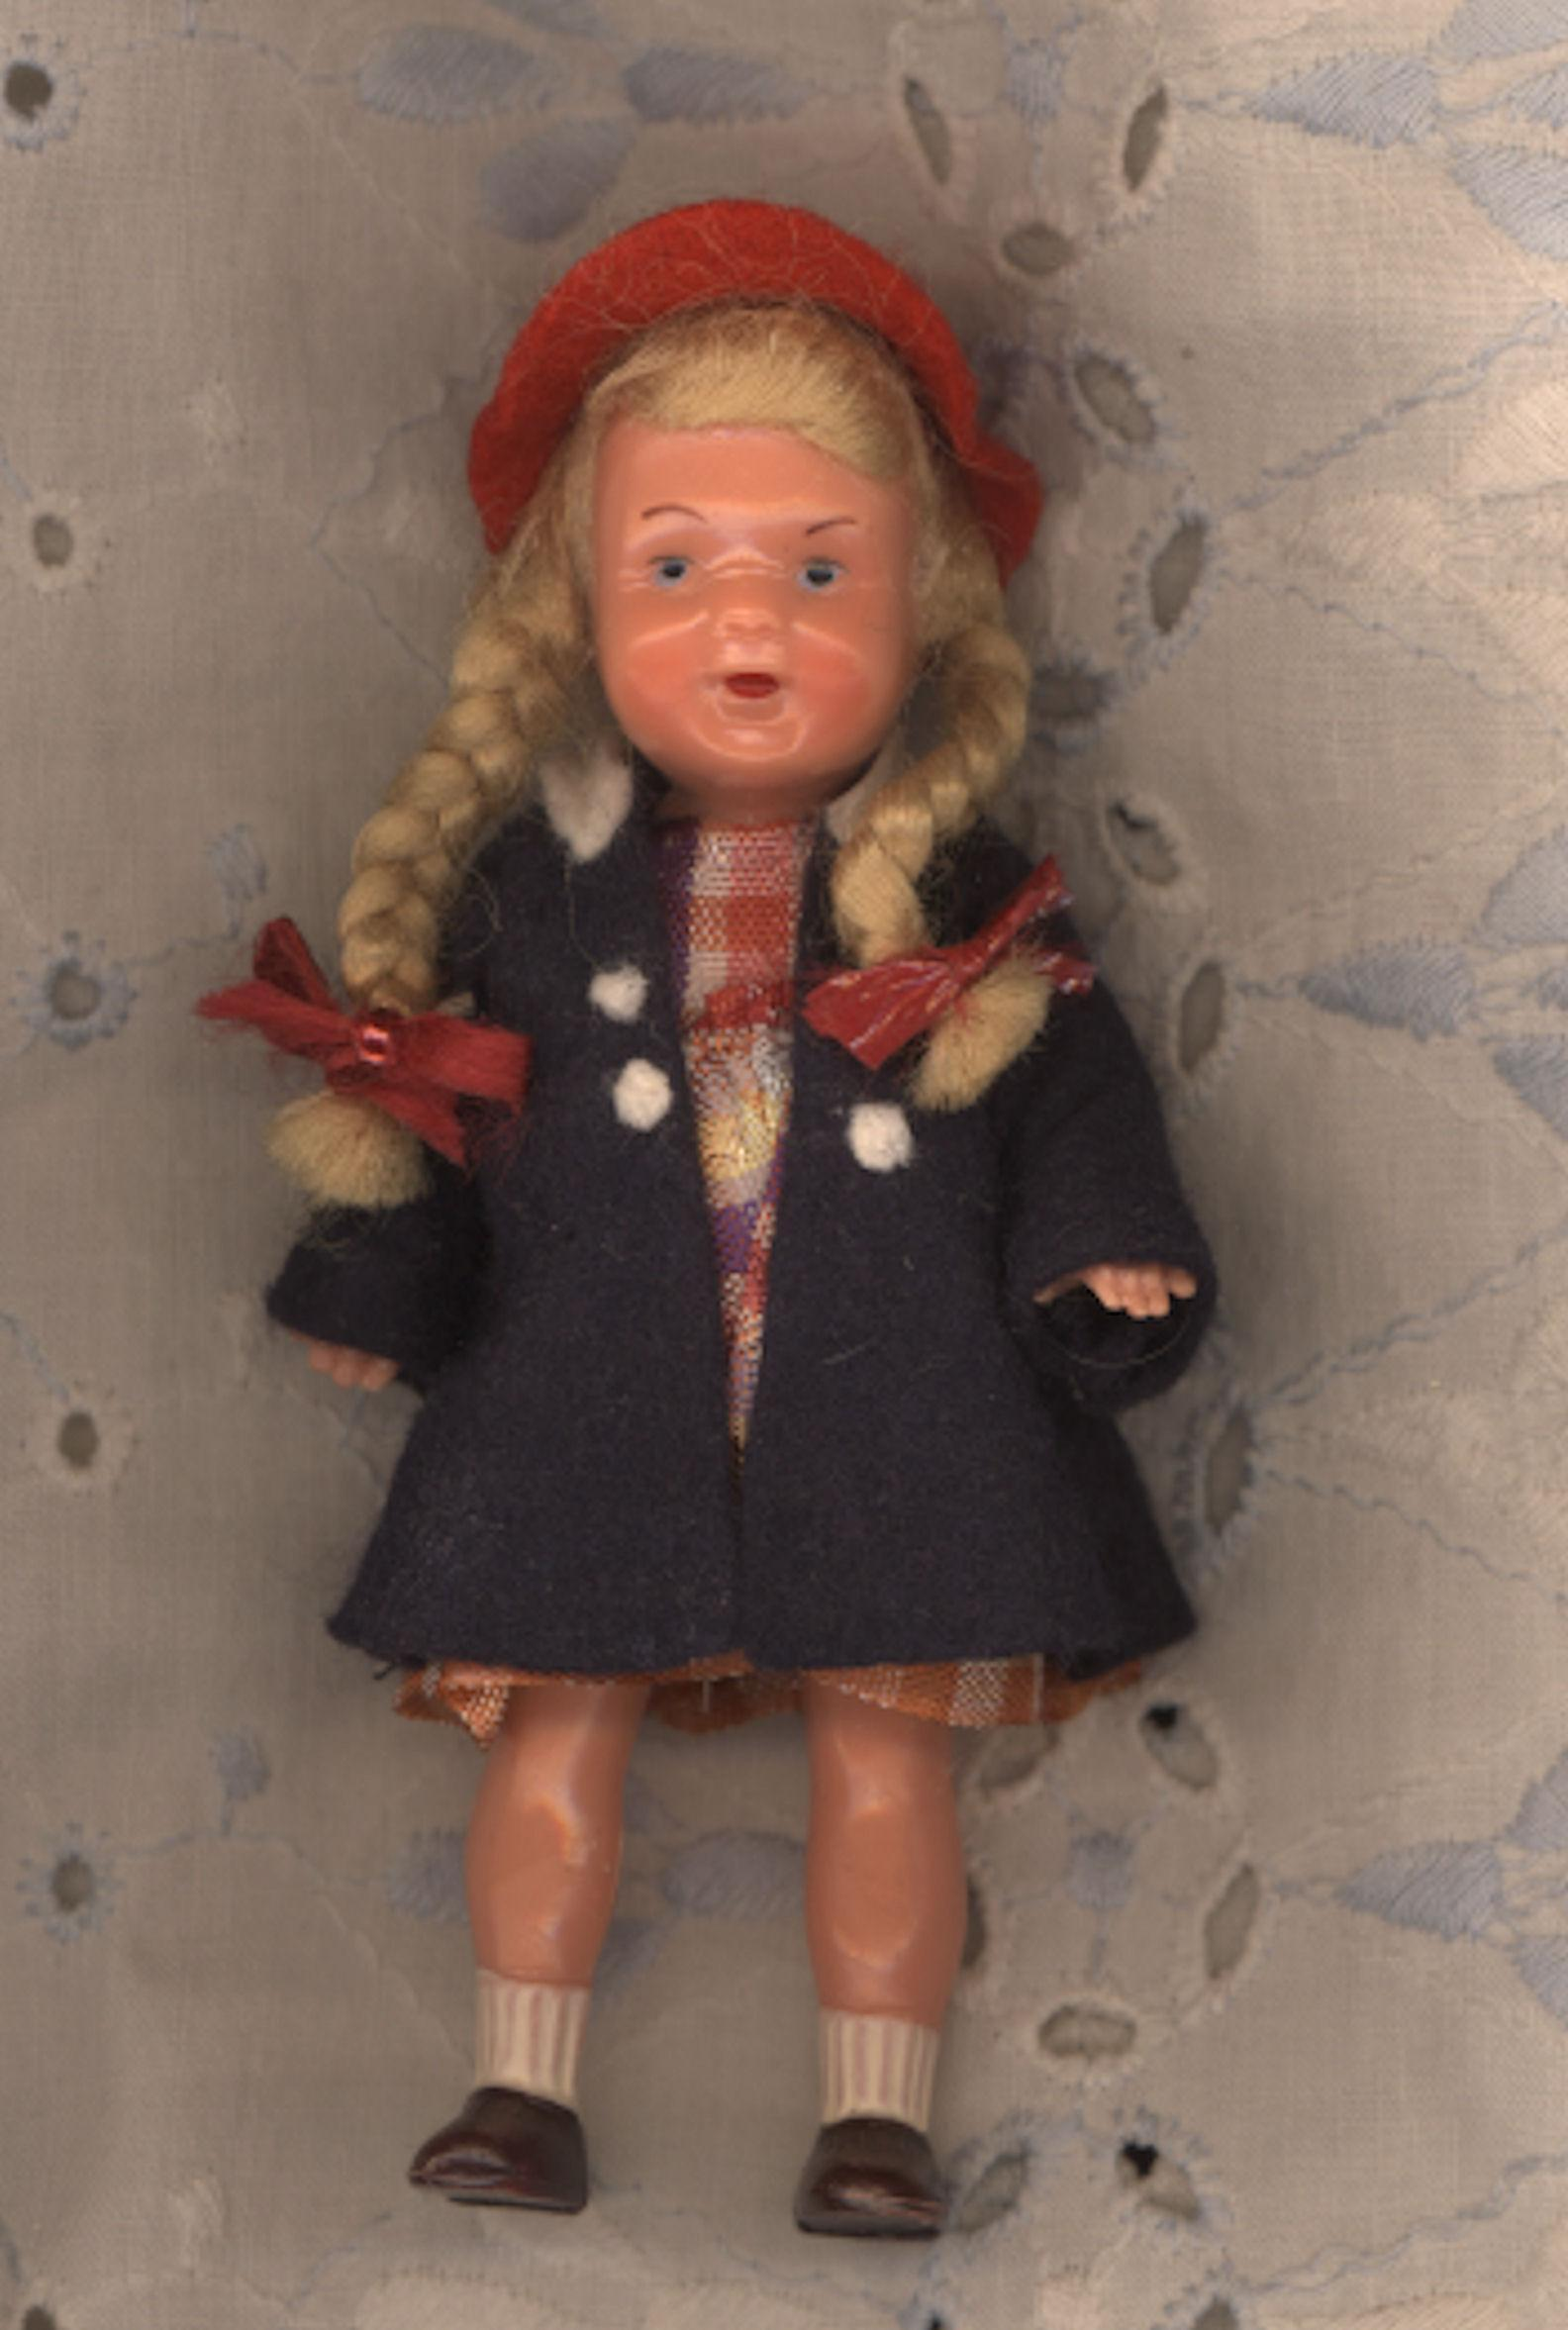 Vintage German Hard Plastic Dollhouse Doll in Original Clothes